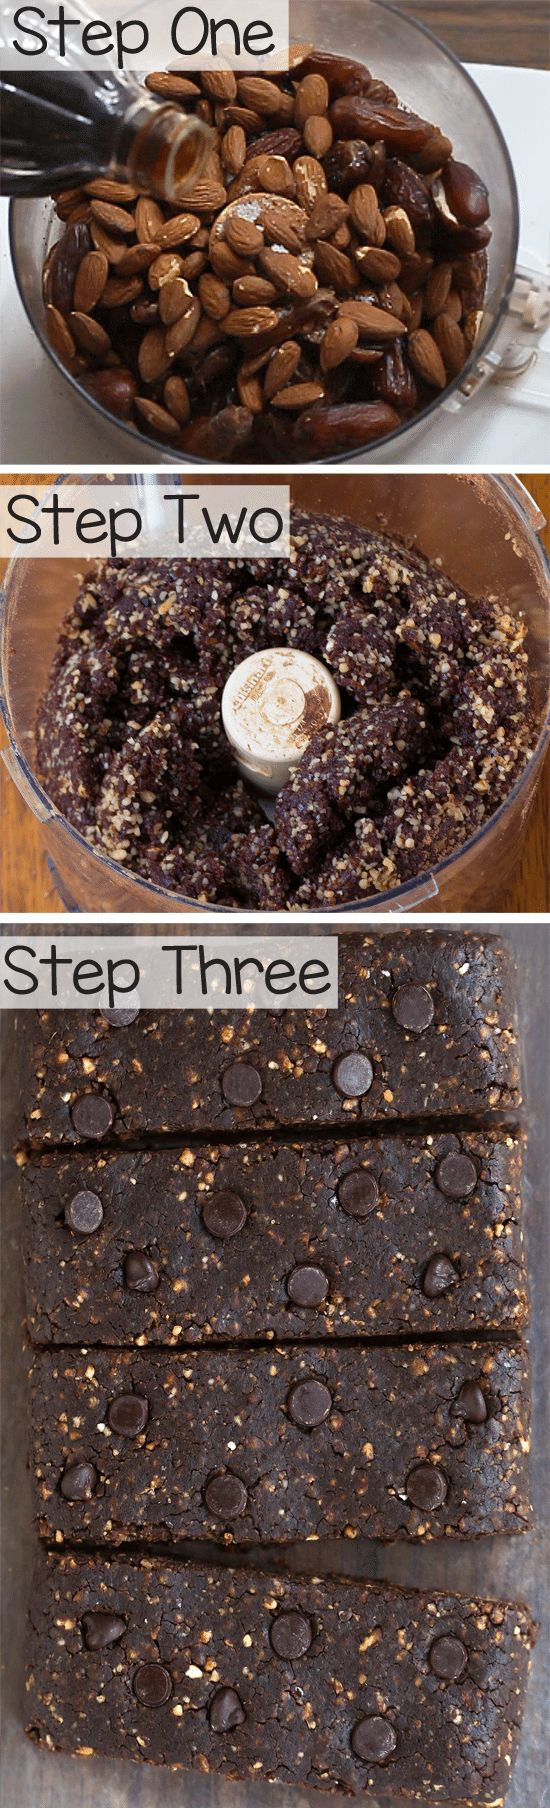 These fudgy chocolate paleo bars are a wholesome and no-bake snack you can feel good about eating.